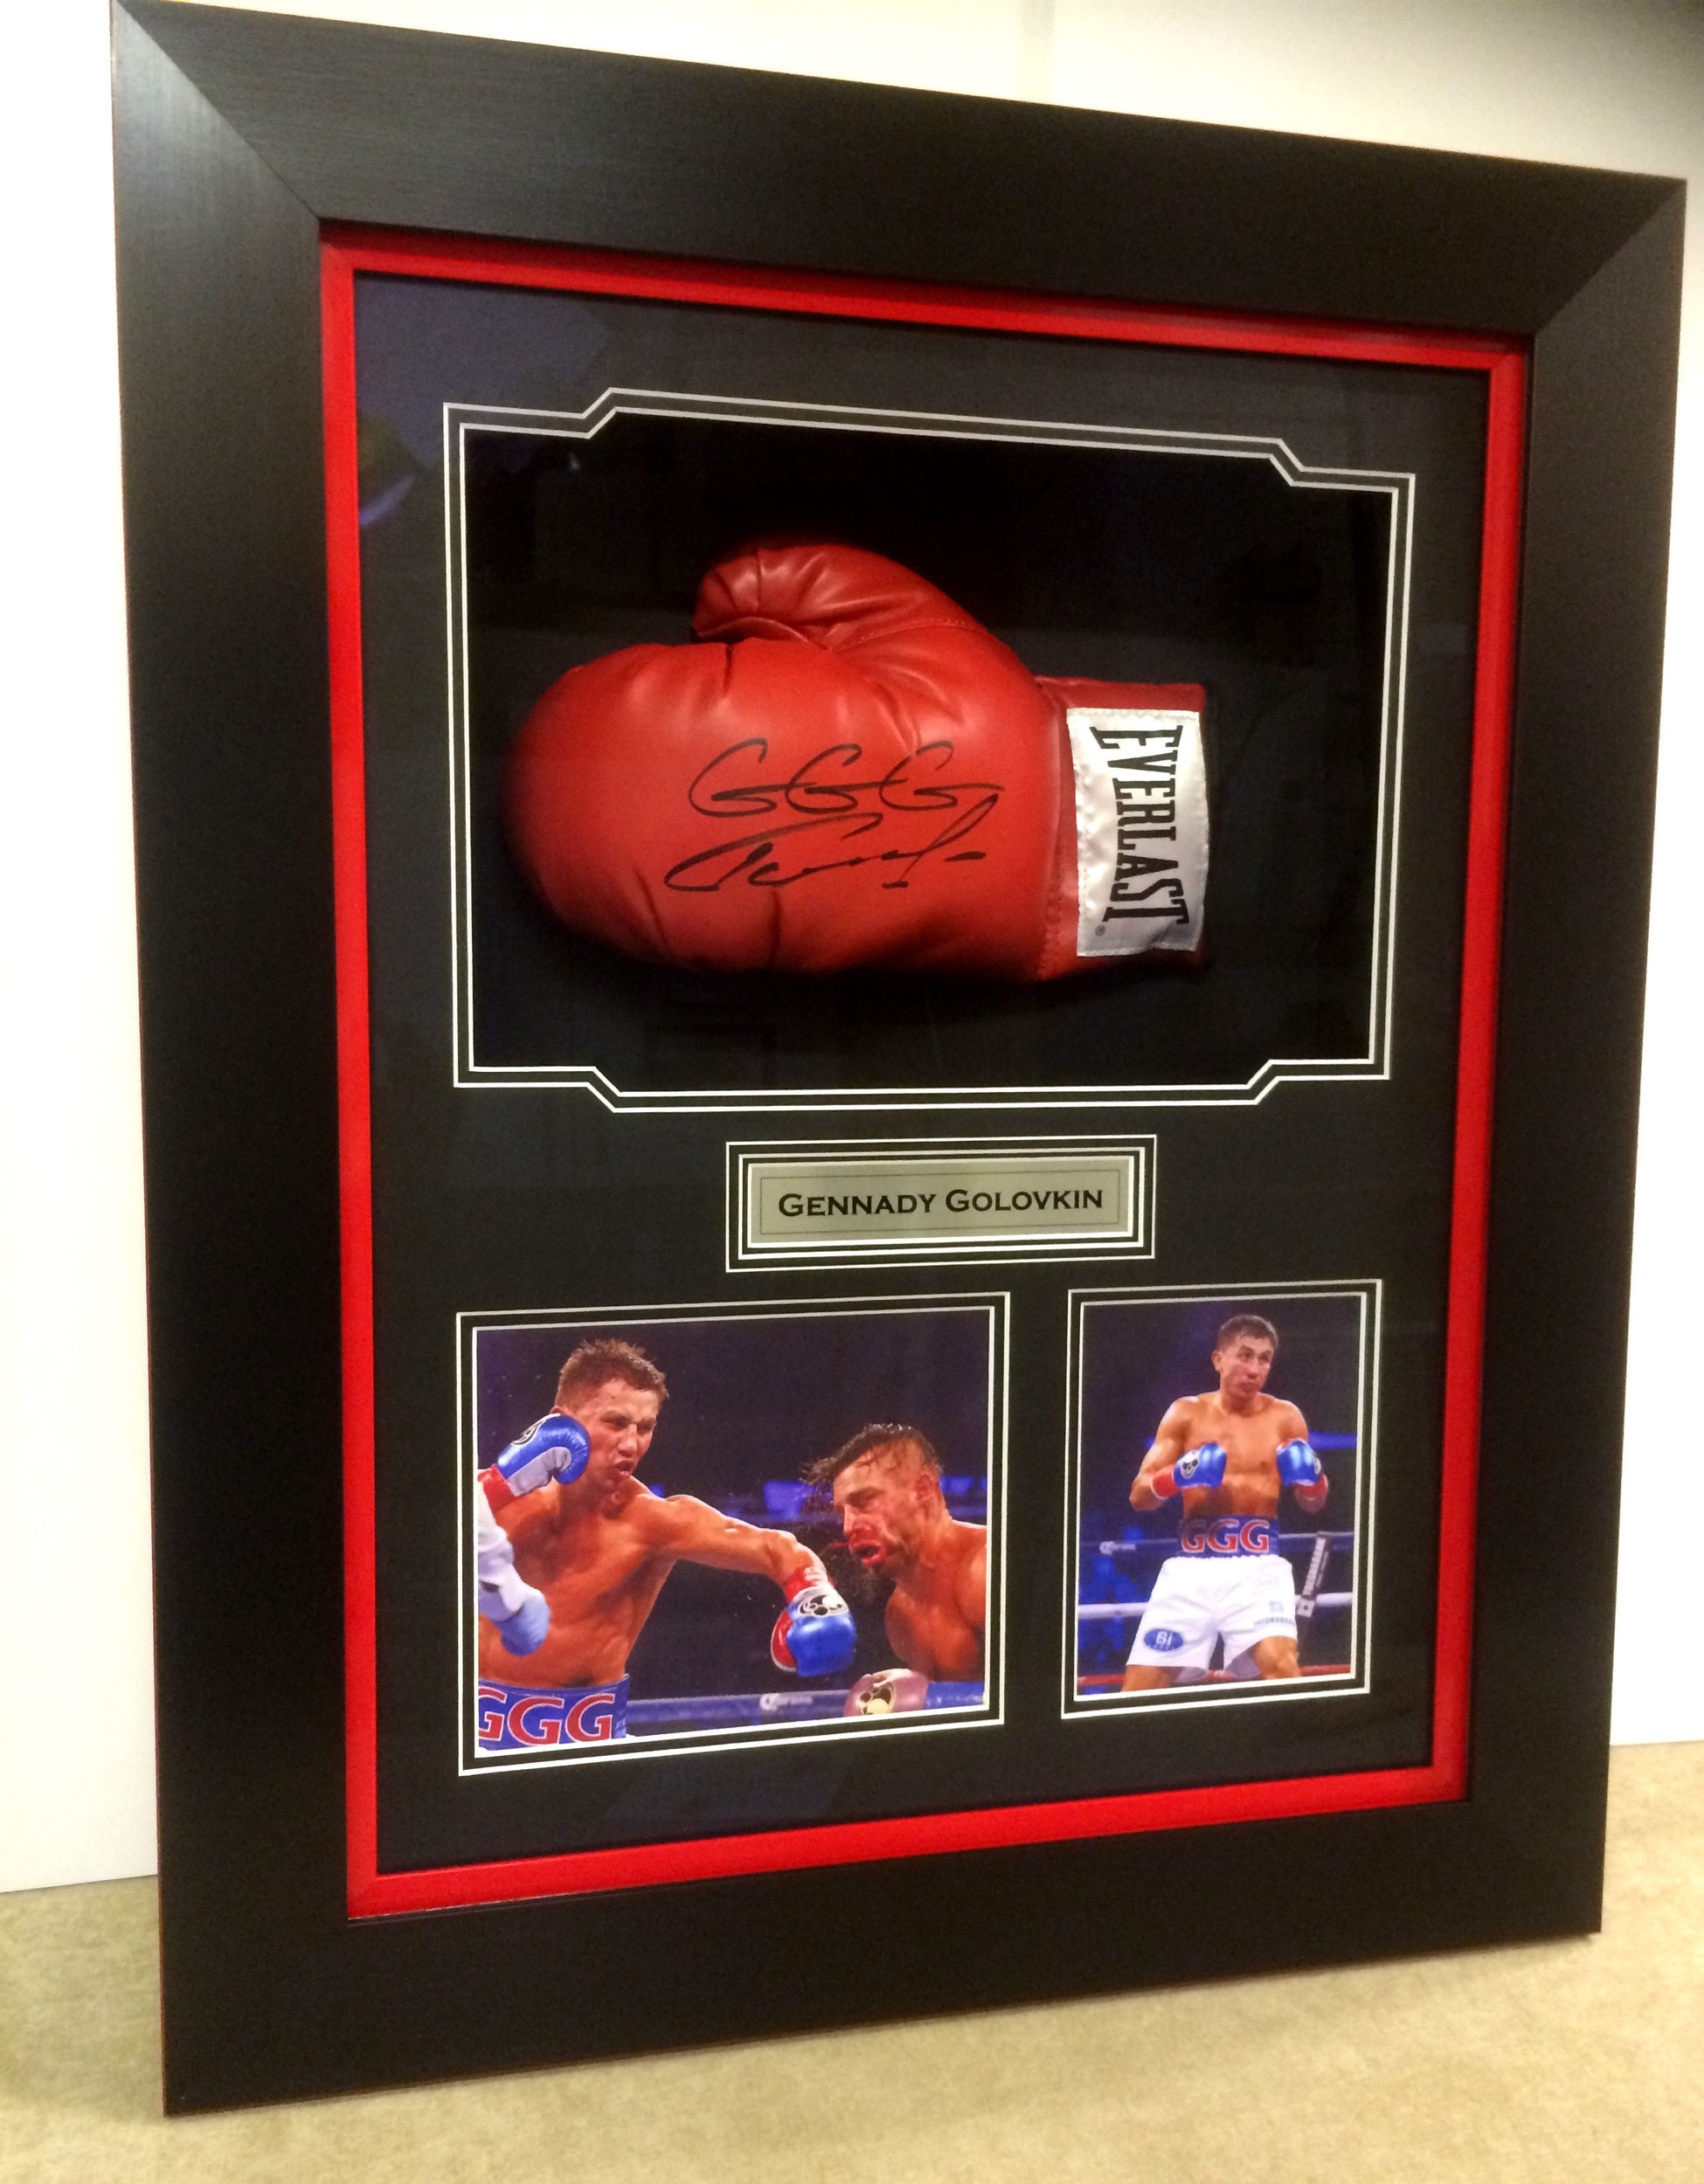 The boxing glove are held by hidden anchors and the box frame is lined with the same backing colour to make the glove stand out in its own chamber. A sublimation plaque is placed in a central position to finish it off. UV filter glass stops any colour fading to preserve the items.